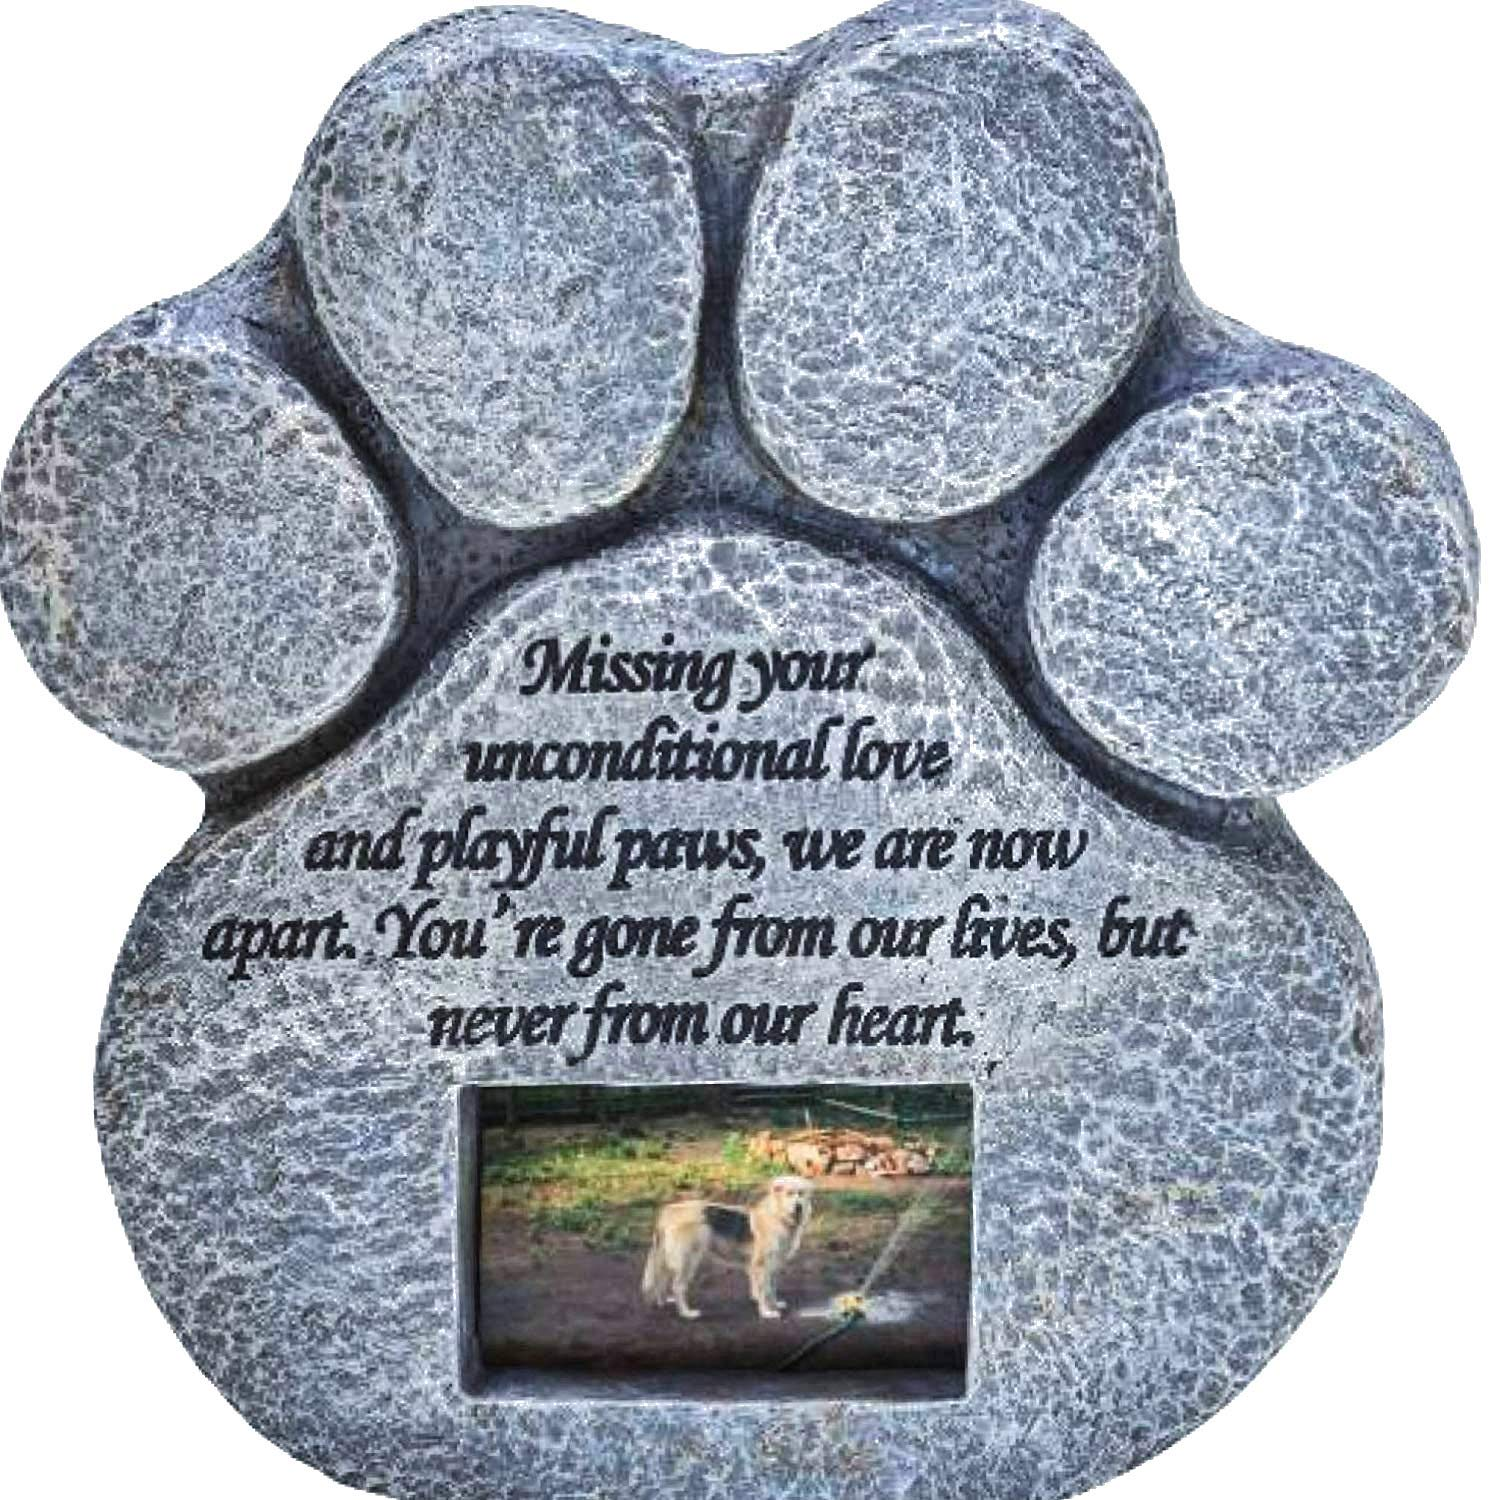 Paw Print Pet Memorial Stone- Features a Photo Frame and Sympathy Poem. Made of Weatherproof Resin. Indoor Outdoor. Dog or Cat. For Garden, Backyard, or House